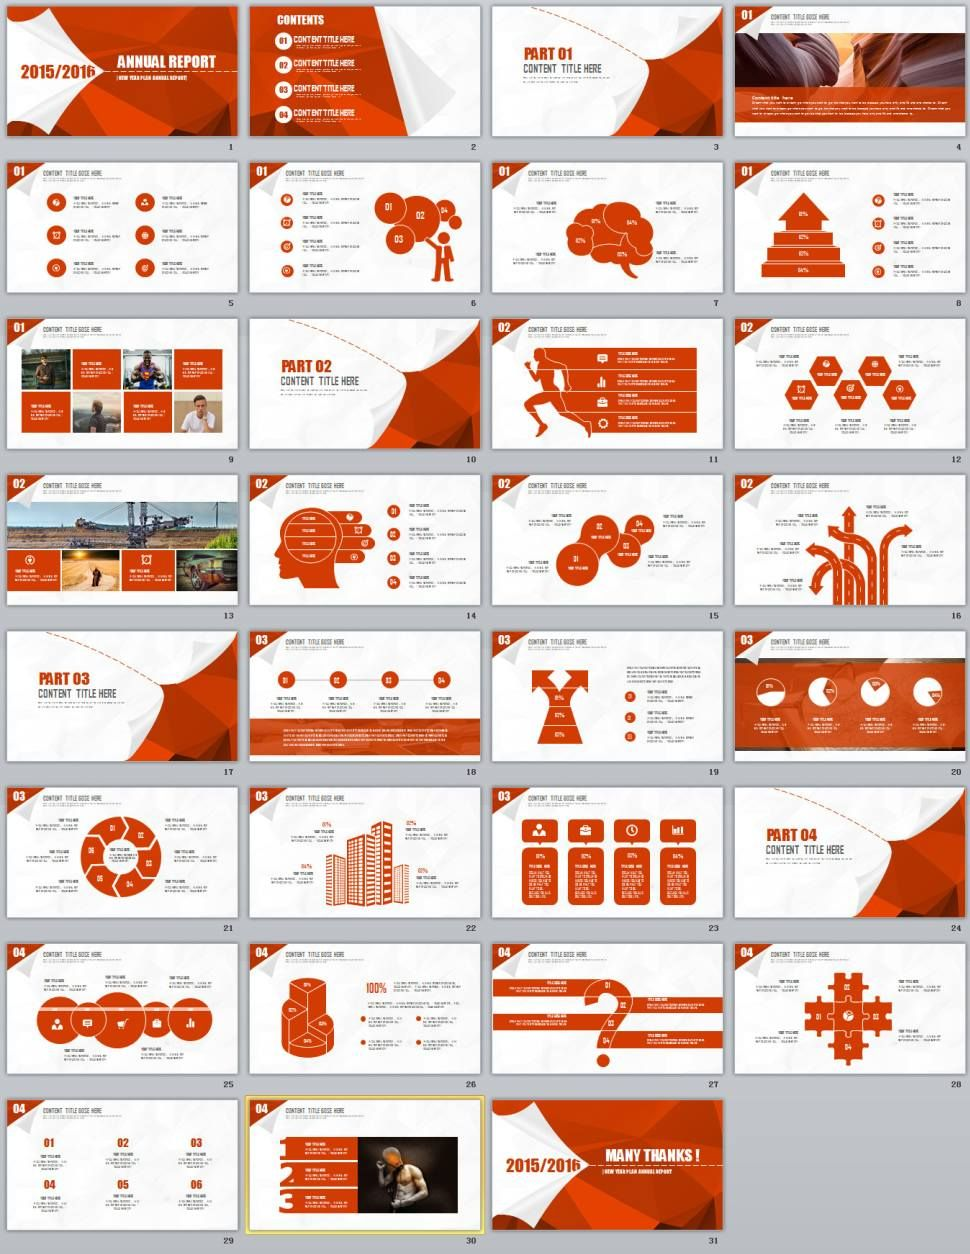 31 redcolor annual report powerpoint templates annual reports 31 redcolor annual report powerpoint templates the highest quality powerpoint templates and keynote templates toneelgroepblik Gallery